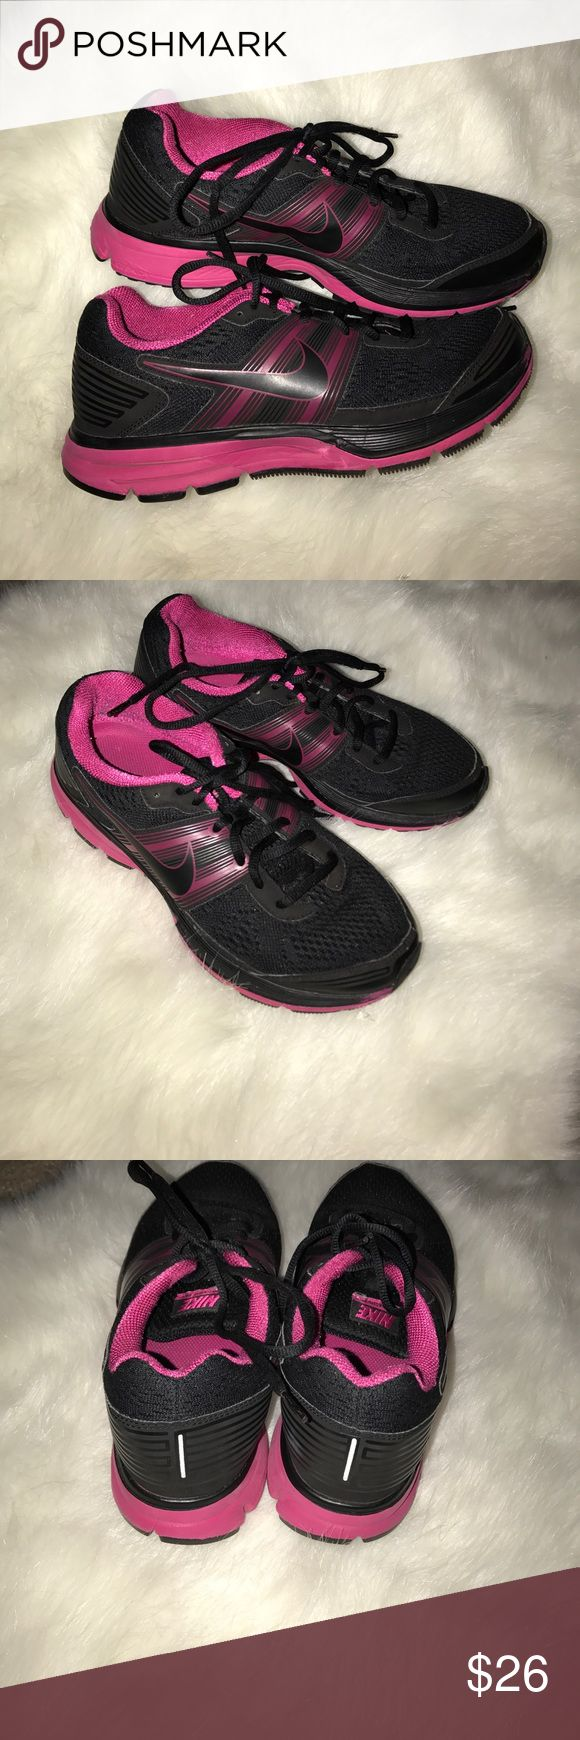 Pink and black Nikes Women pink and black Nike sneakers Nike Shoes Sneakers